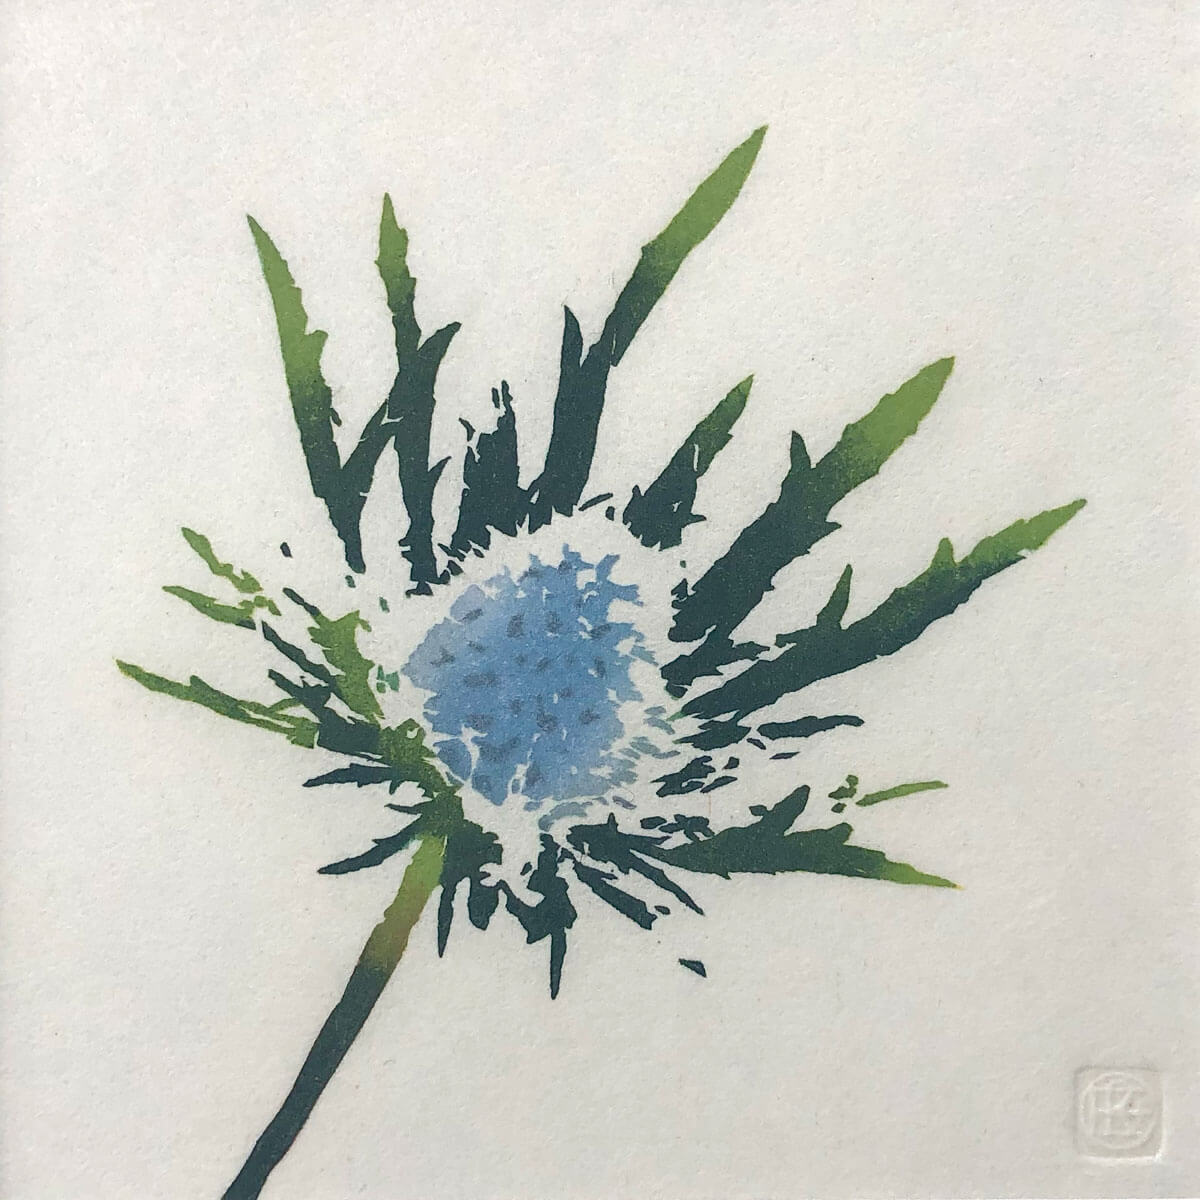 Eryngium woodblock print by Claire Cameron-Smith